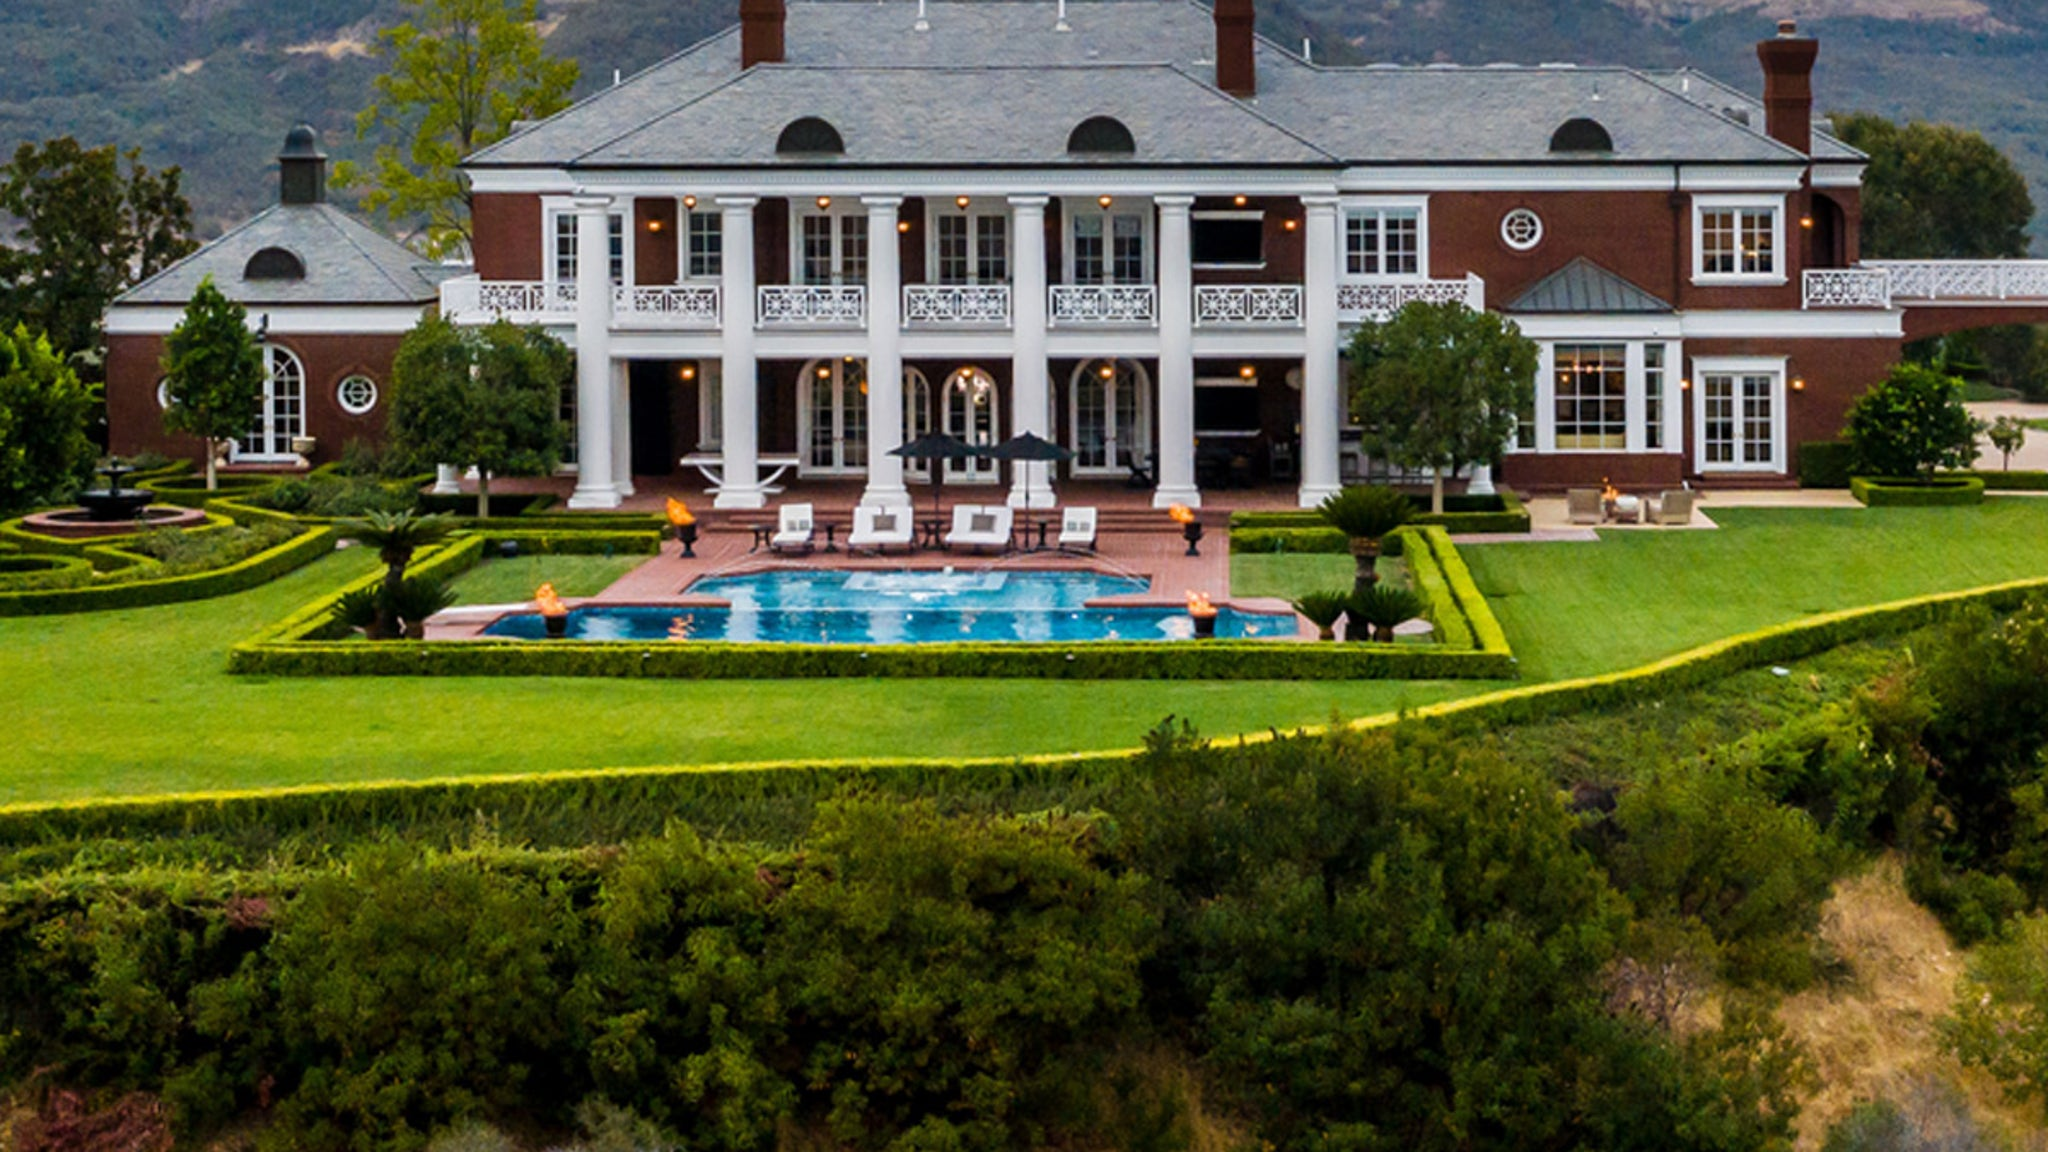 Wayne Gretzky Selling Famous Lenny Dykstra Mansion Again ... Got $23 Mil?!